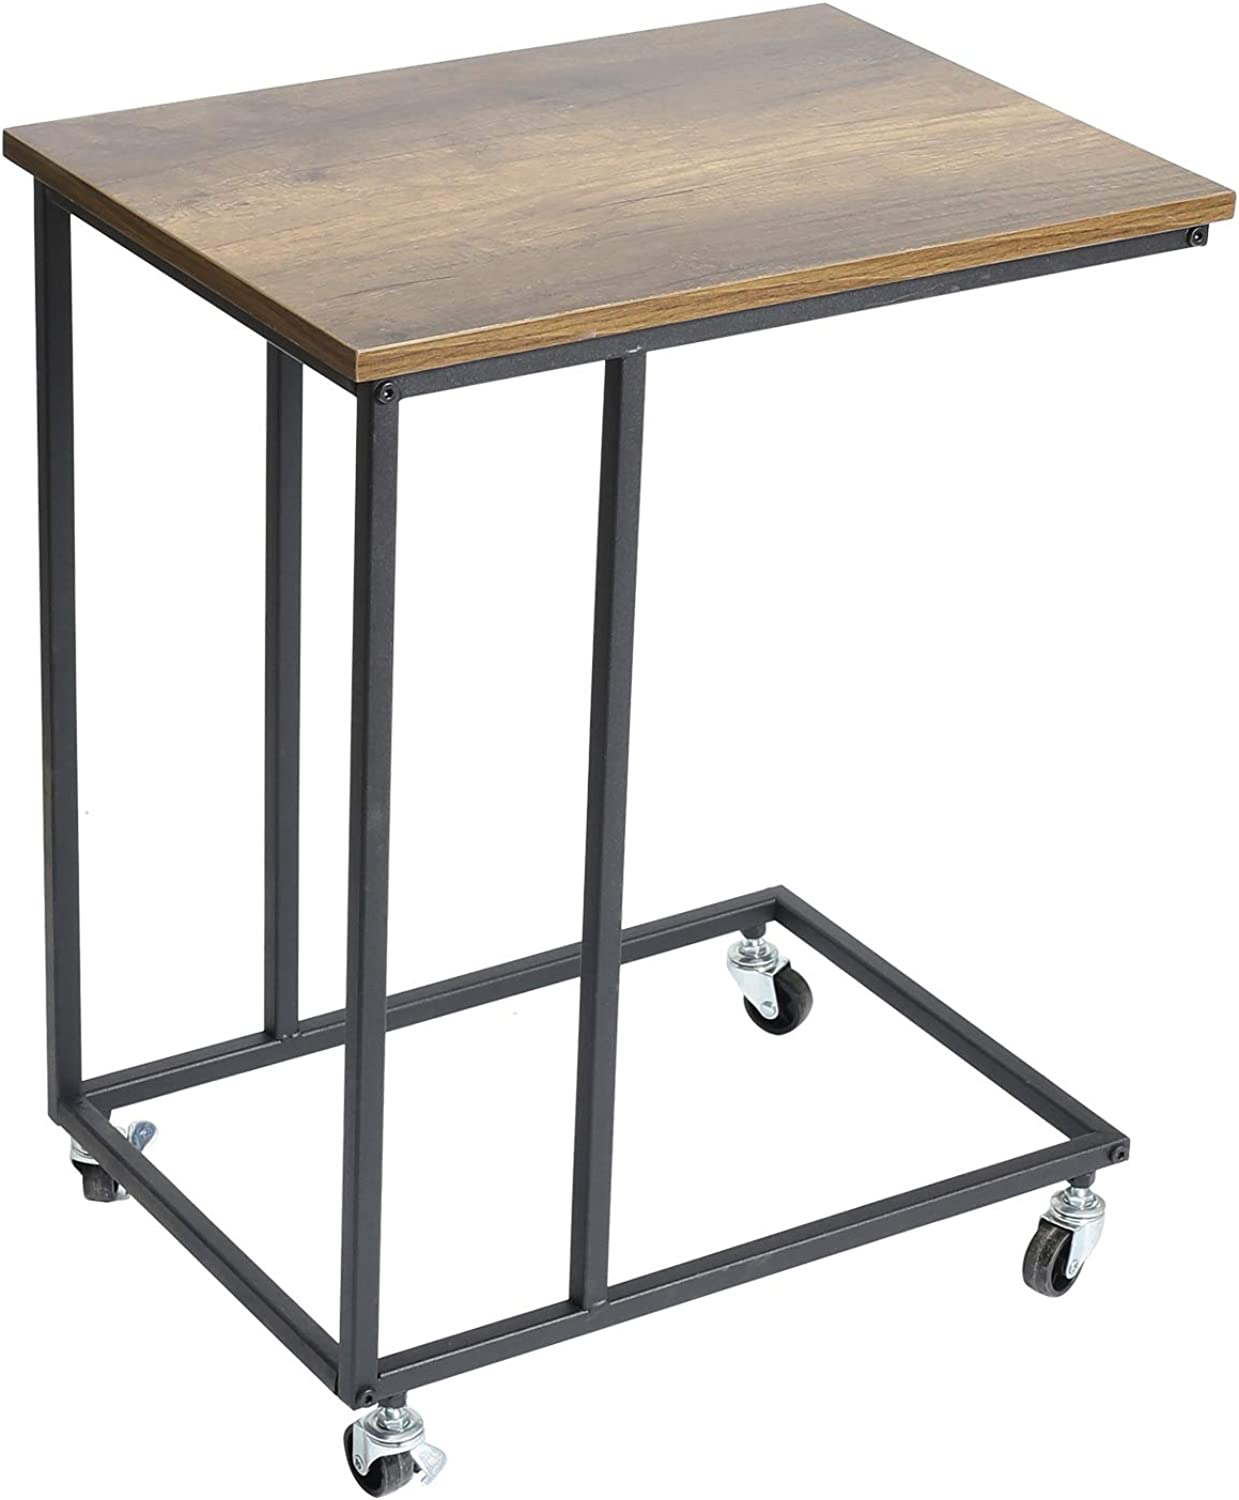 Adeco FT0199-1 Side, Mobile End, Wooden Style Top, Accent Furniture with Metal Frame, Heights 24 Inches Coffee Tables Wood